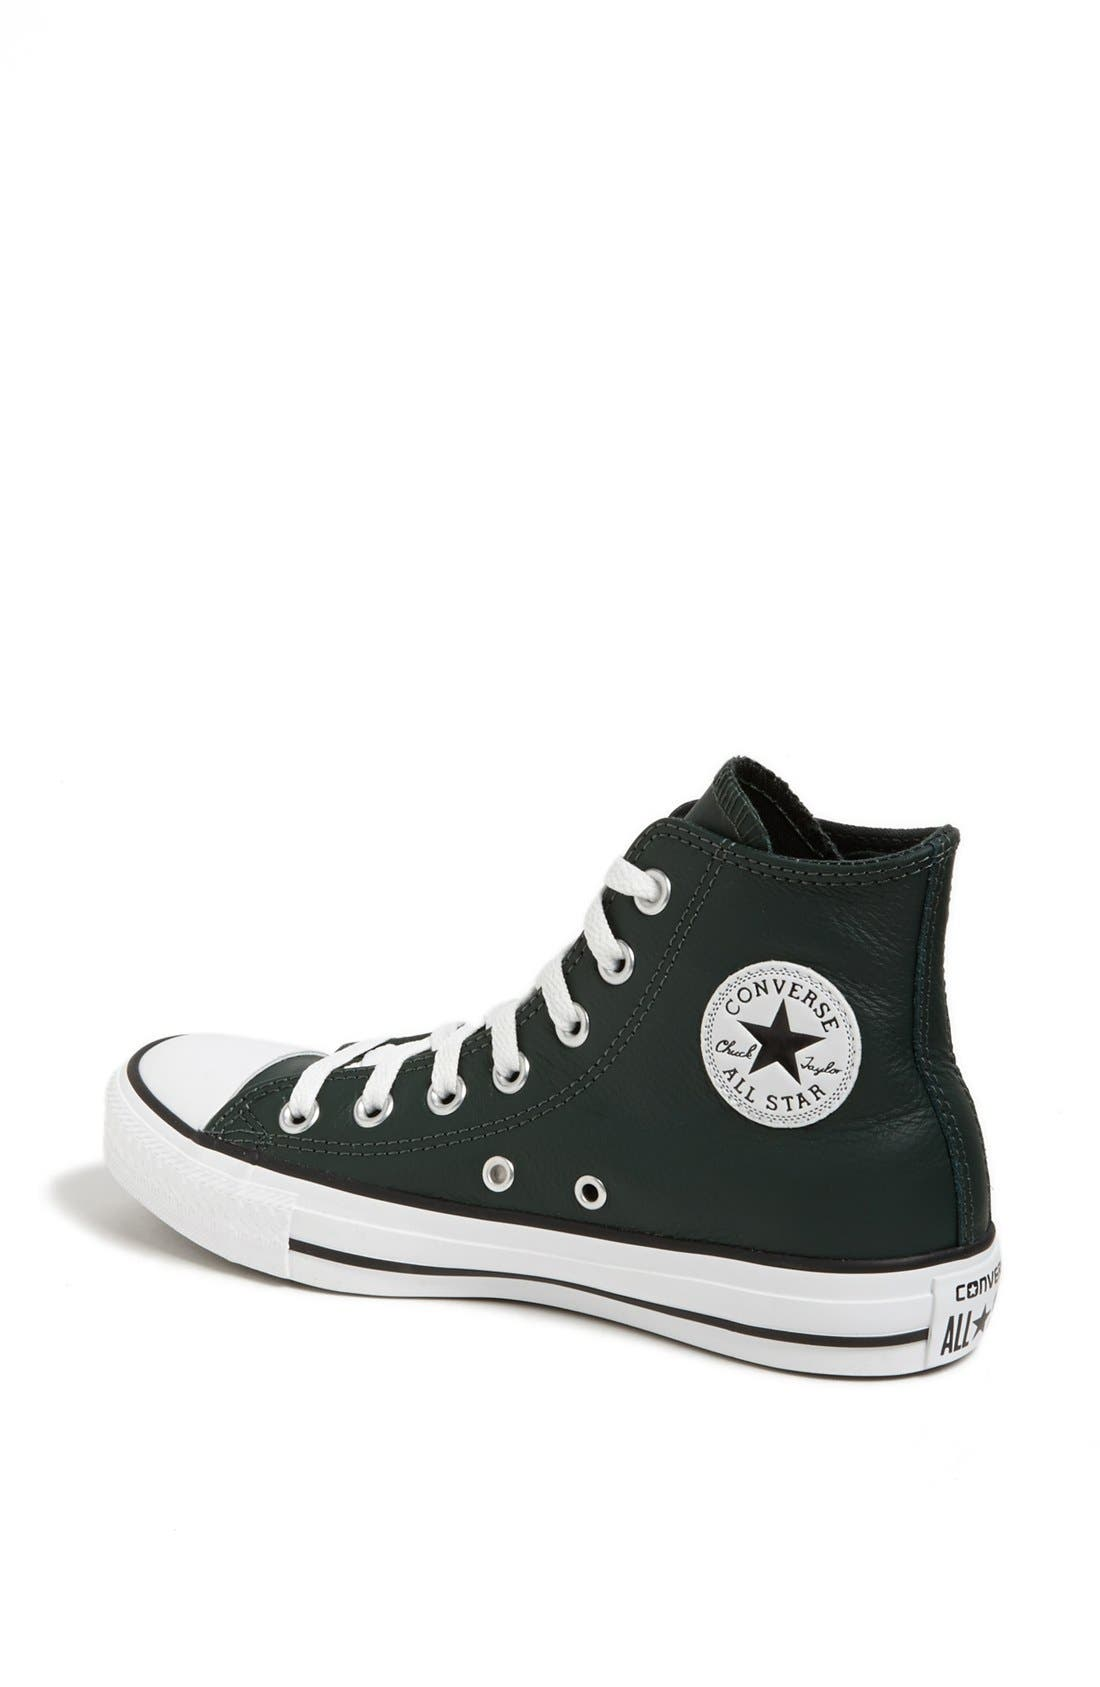 Alternate Image 2  - Converse Chuck Taylor® All Star® Leather High Top Sneaker (Women)